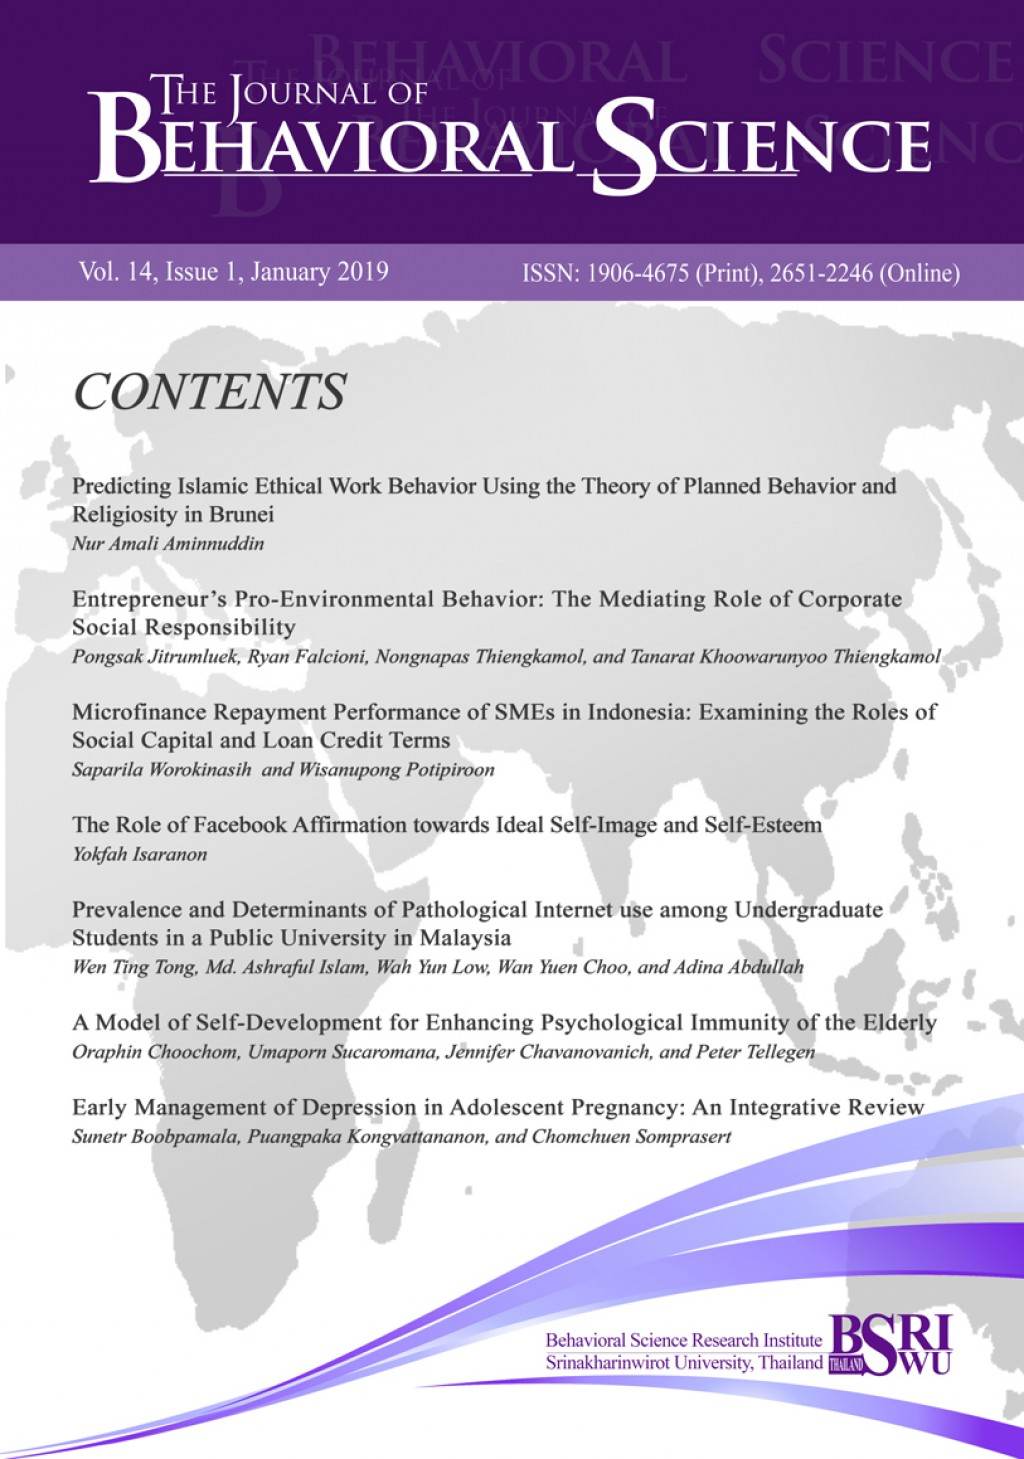 019 Environmental Science Research Papers Pdf Paper Cover Issue 12776 En Us Staggering Large